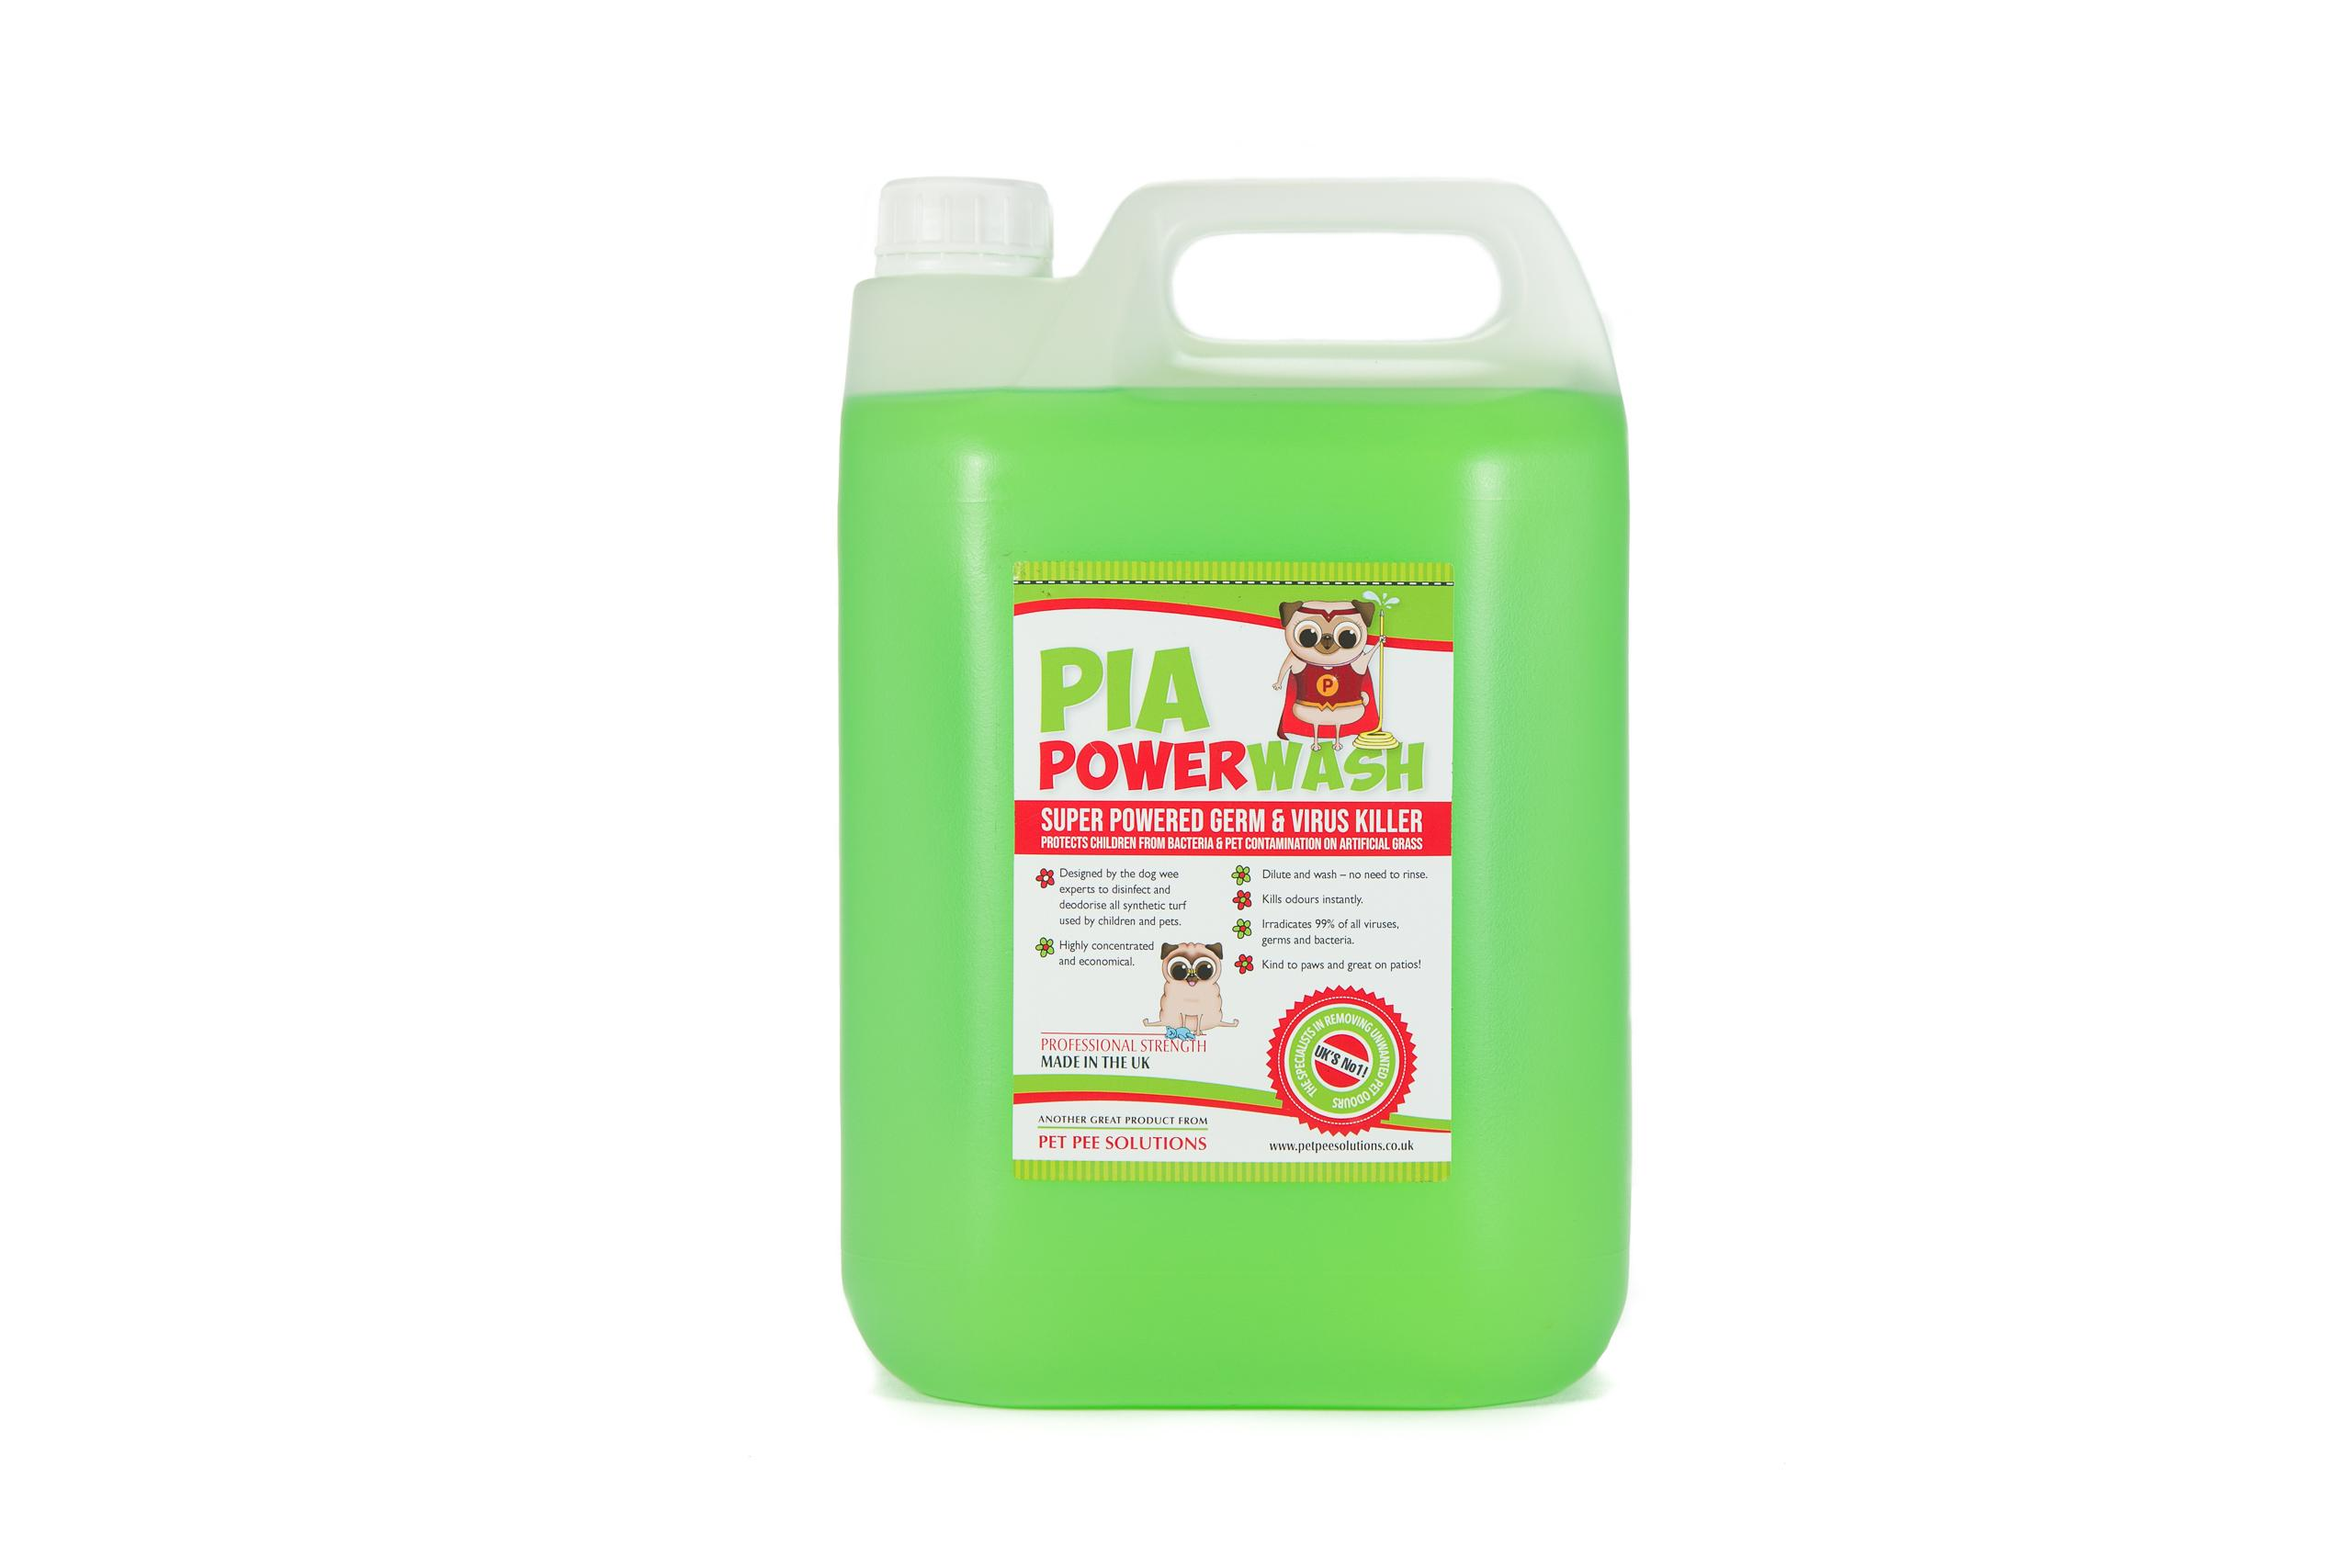 Pia Power Wash artificial grass disinfectant